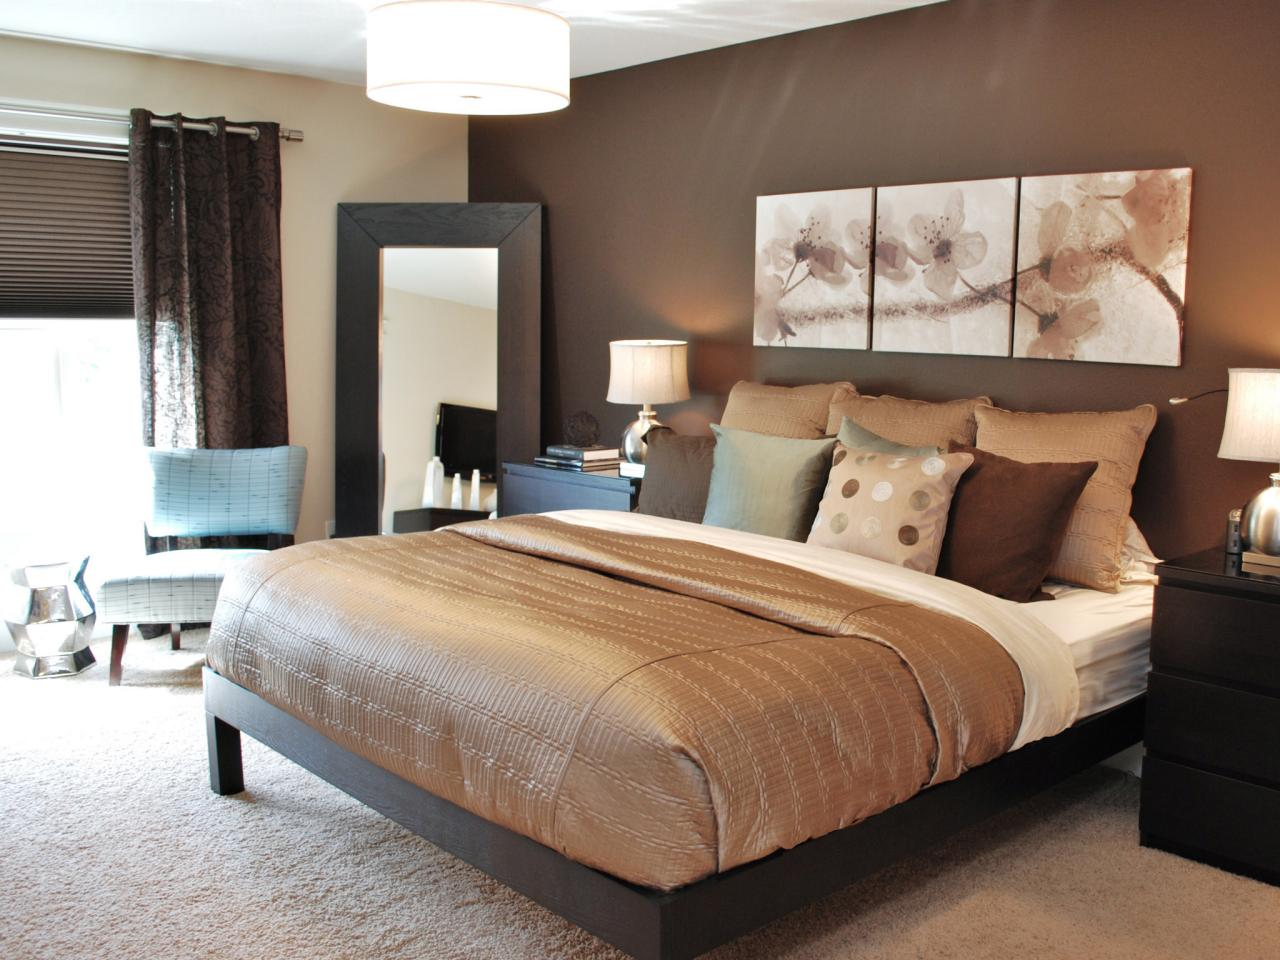 Best Colors for Master Bedrooms | Home Remodeling - Ideas ... on Best Master Bedroom Designs  id=48241